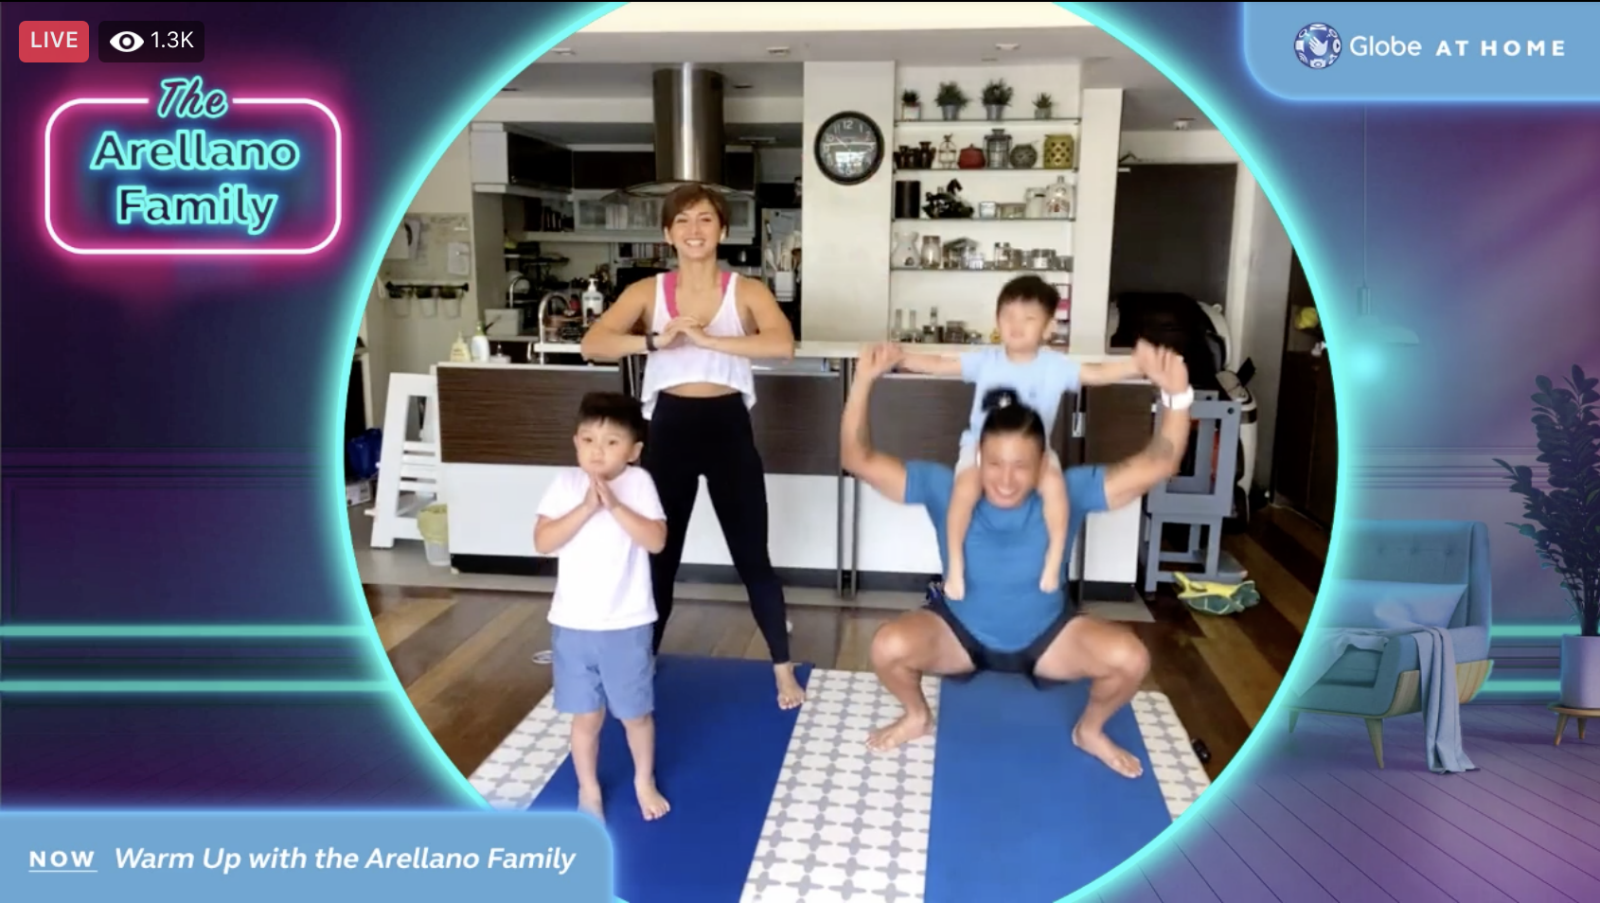 Globe At Home Enables Everyone to Kick Start Their Wellness Journey With Virtual Fitfest